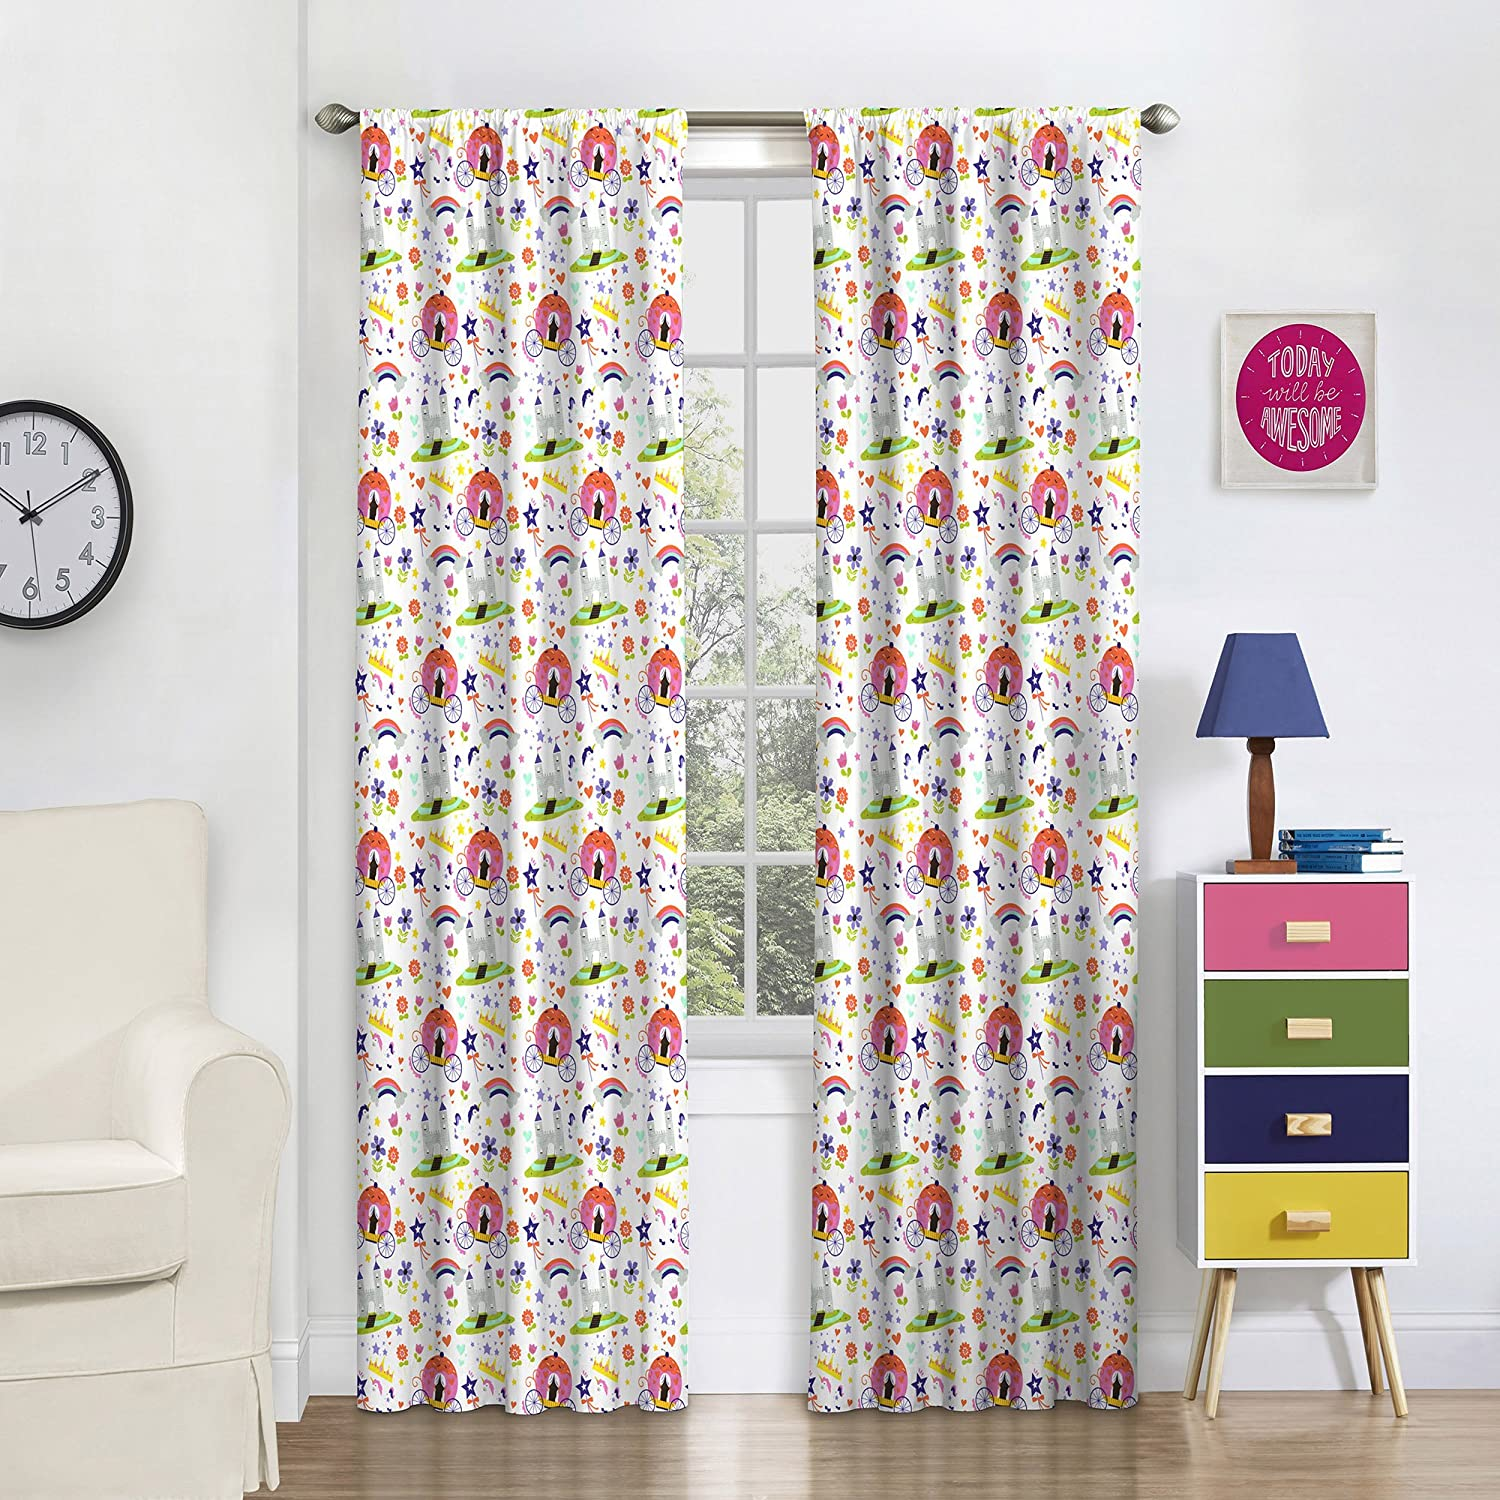 Eclipse 16459042X063MUL Pretty Princess Window Panel,Multi,42x63 Ellery Homestyles